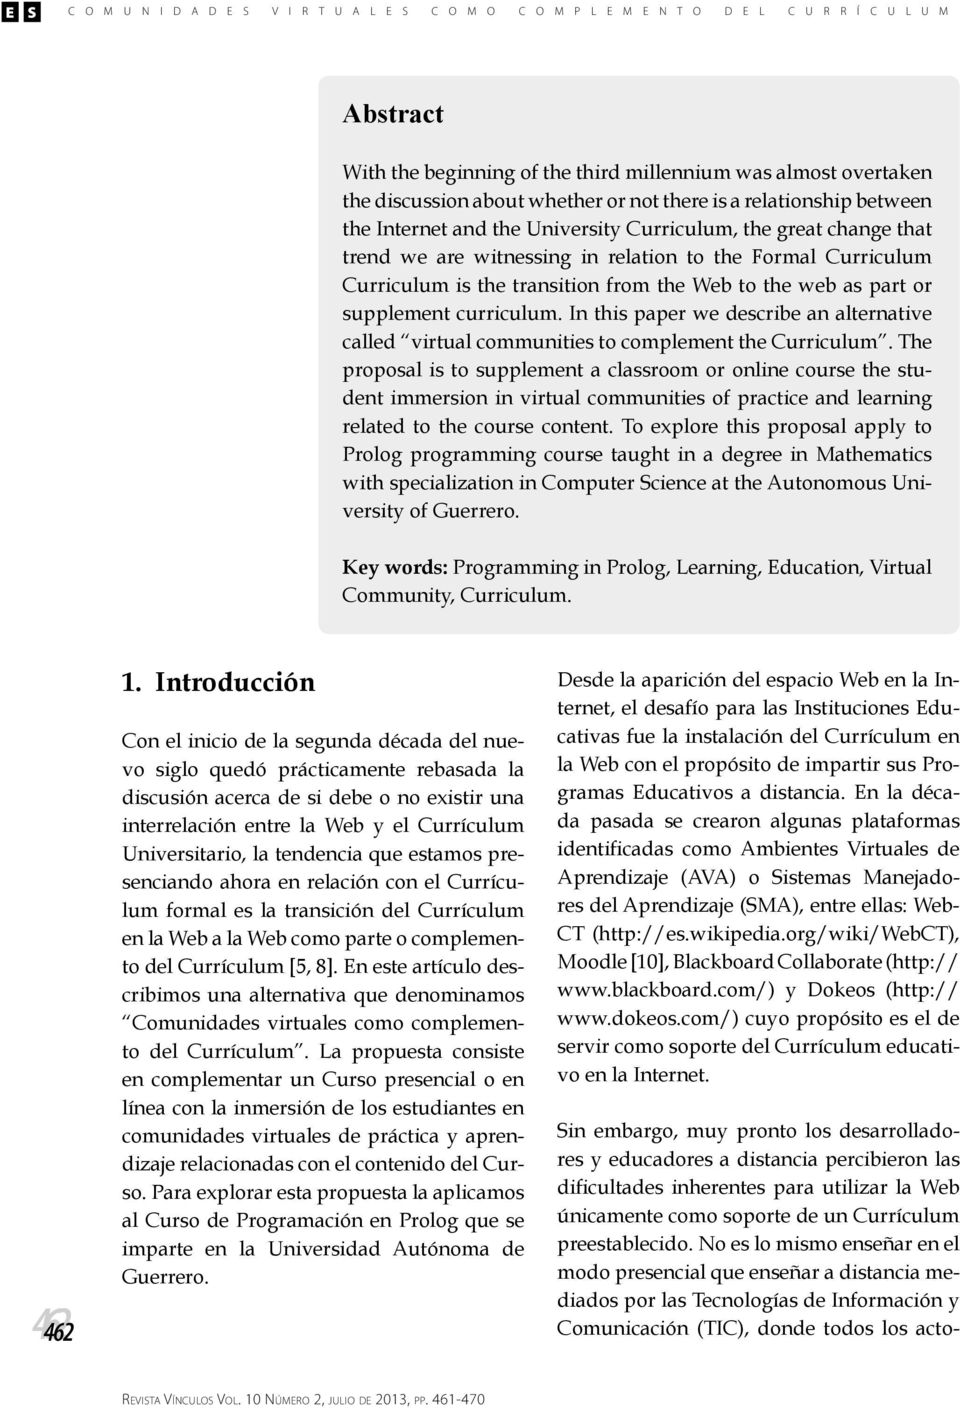 transition from the Web to the web as part or supplement curriculum. In this paper we describe an alternative called virtual communities to complement the Curriculum.